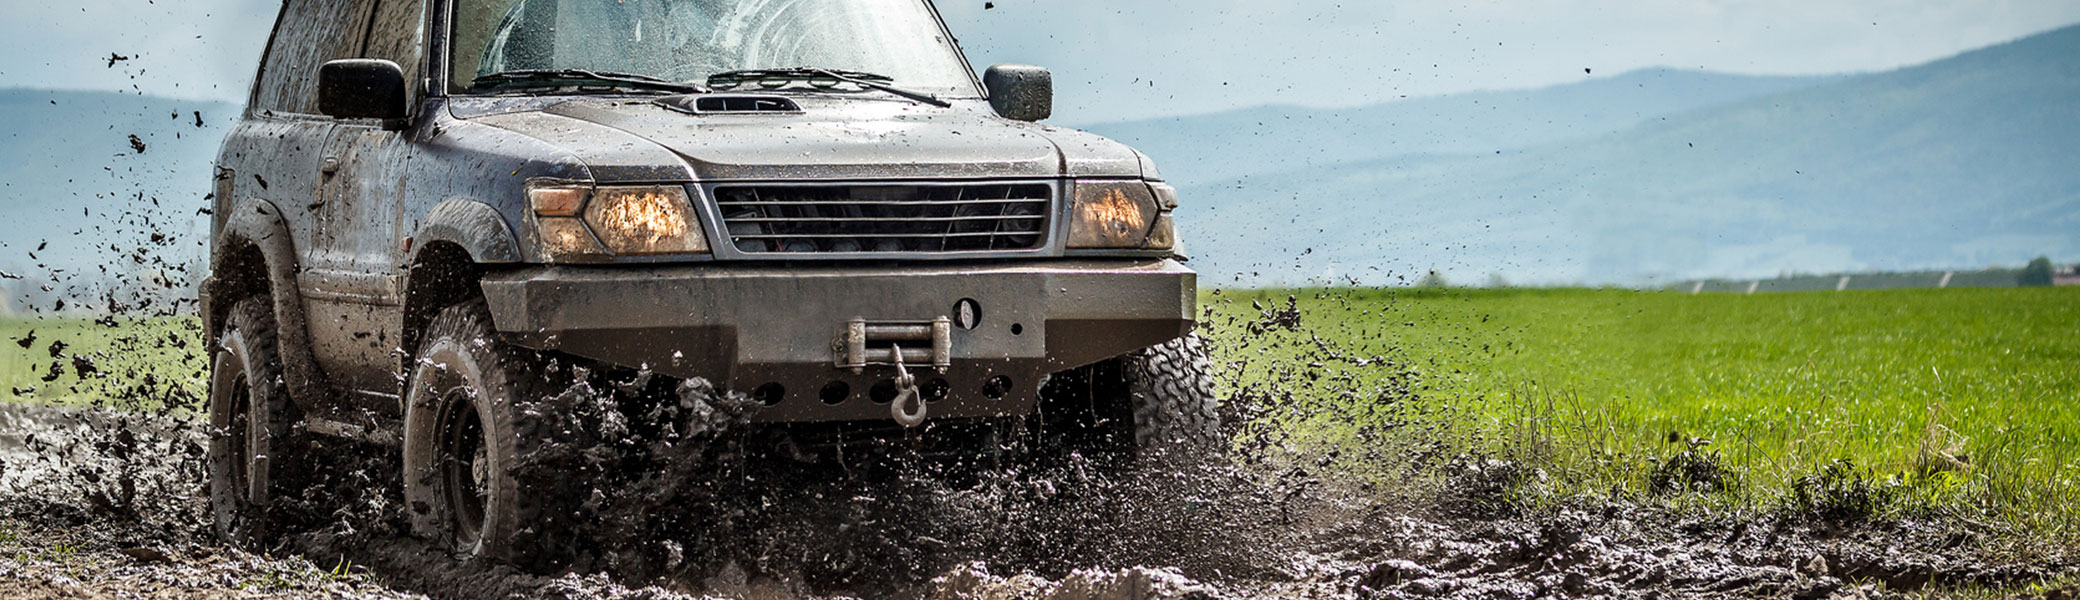 Truck splashing through the mud